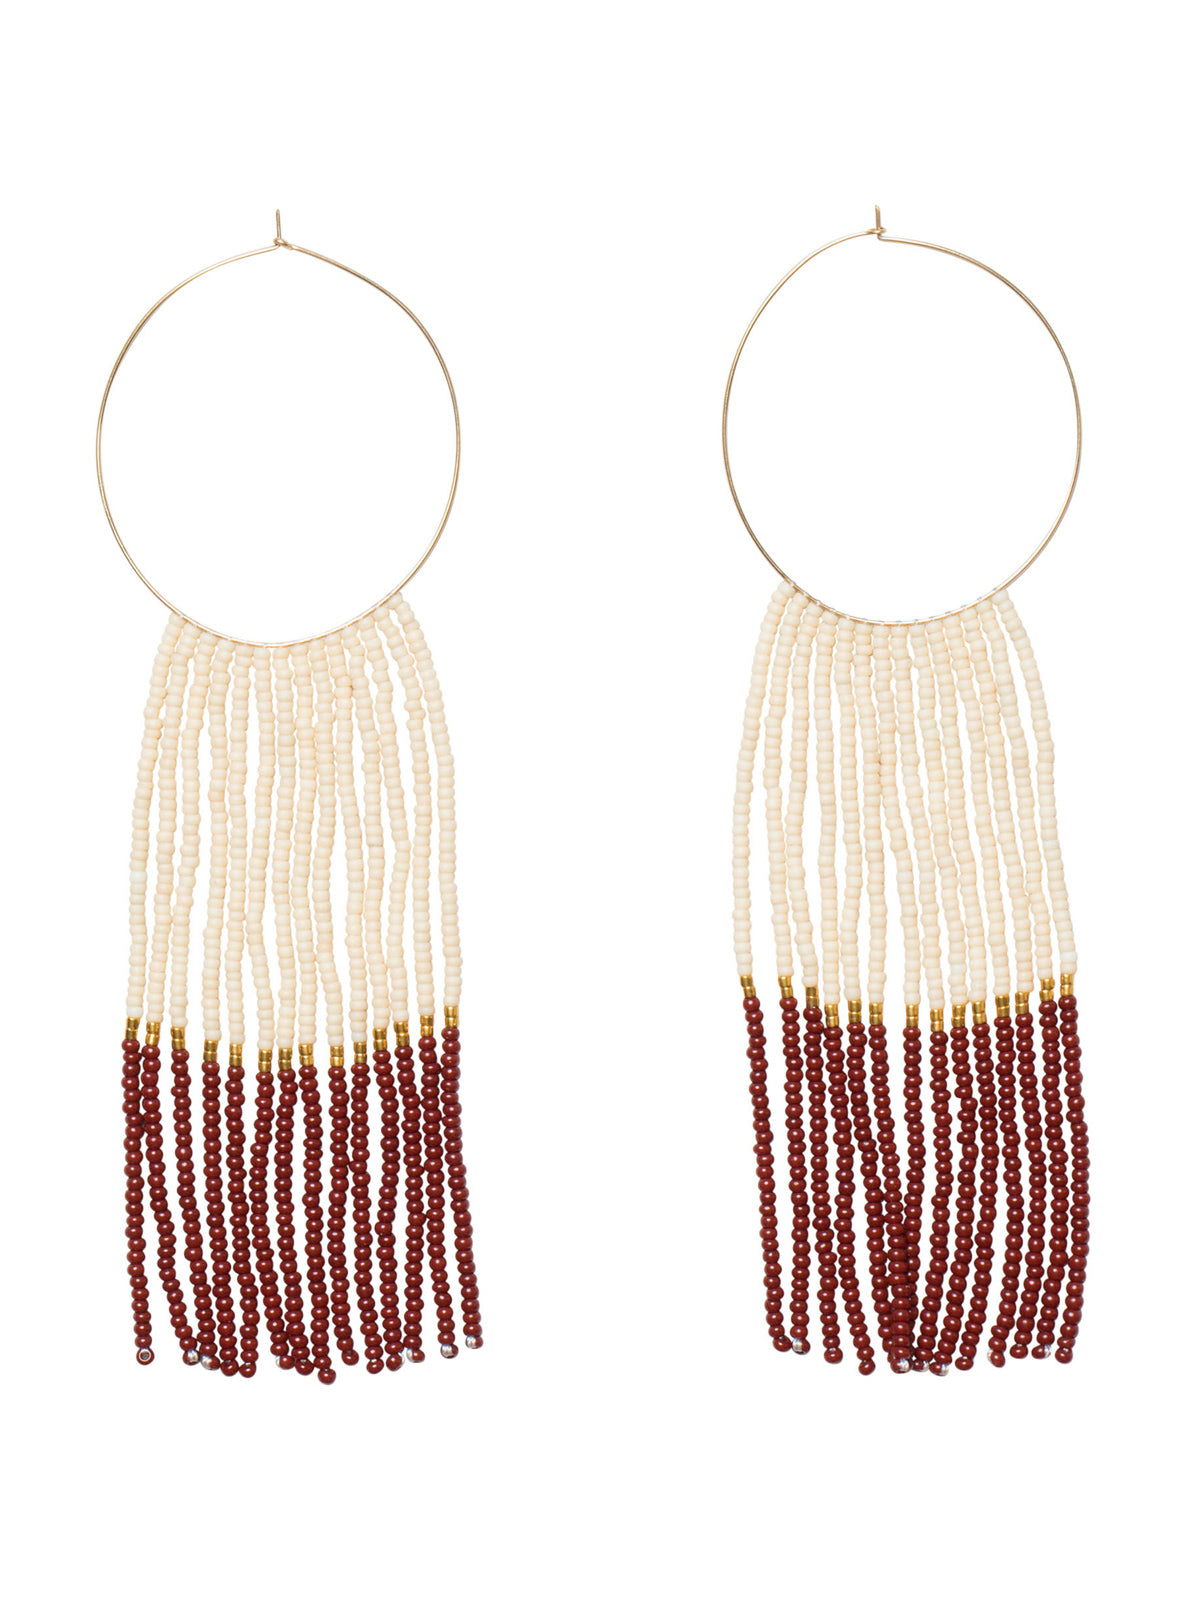 Pembetatu Large Hoop Earrings